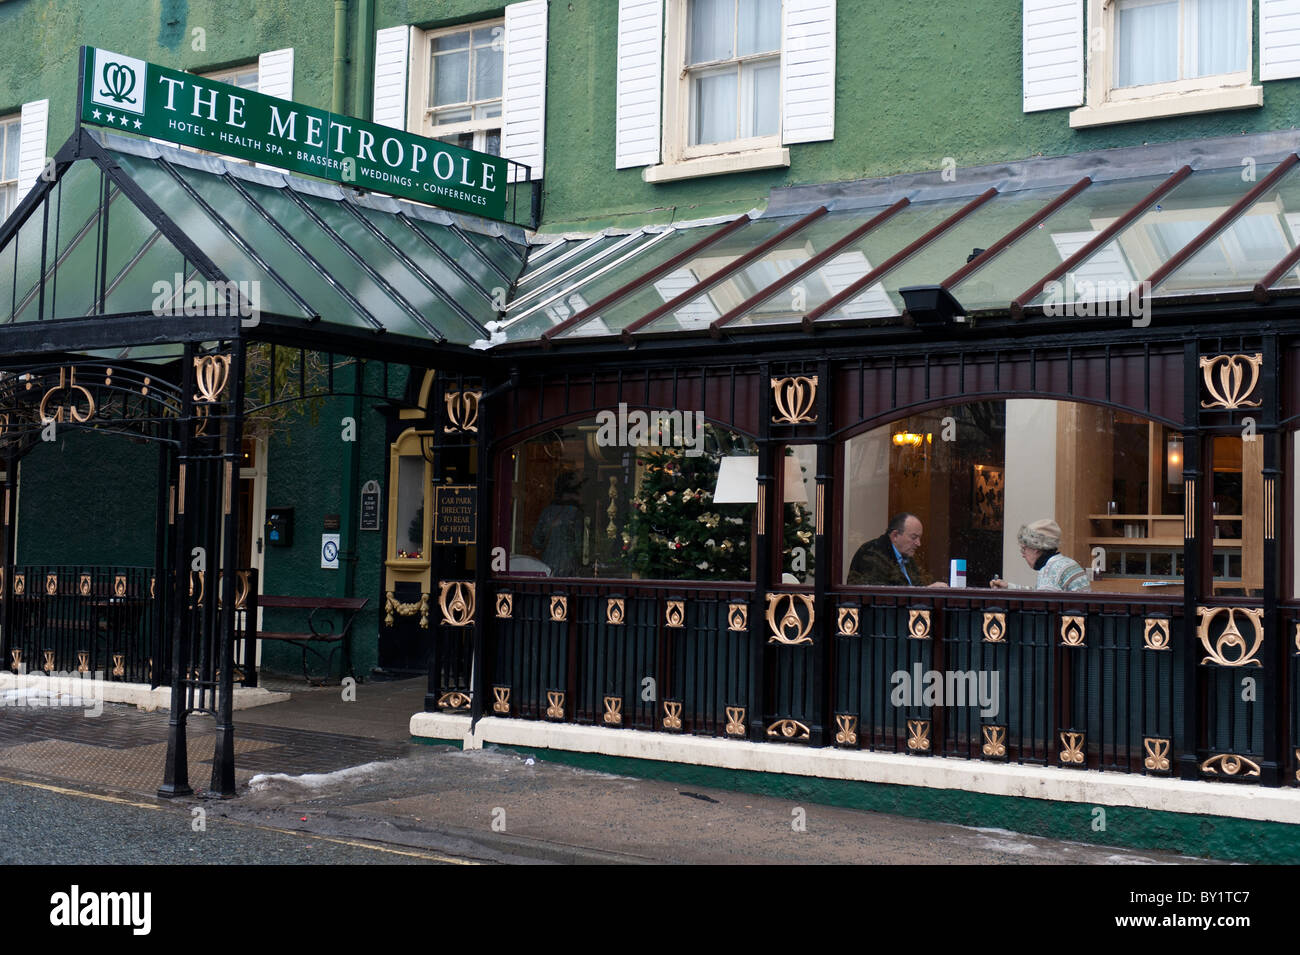 The Metropole Hotel, Llandrindod Wells, Powys, Wales UK - december 29 2010 - Stock Image